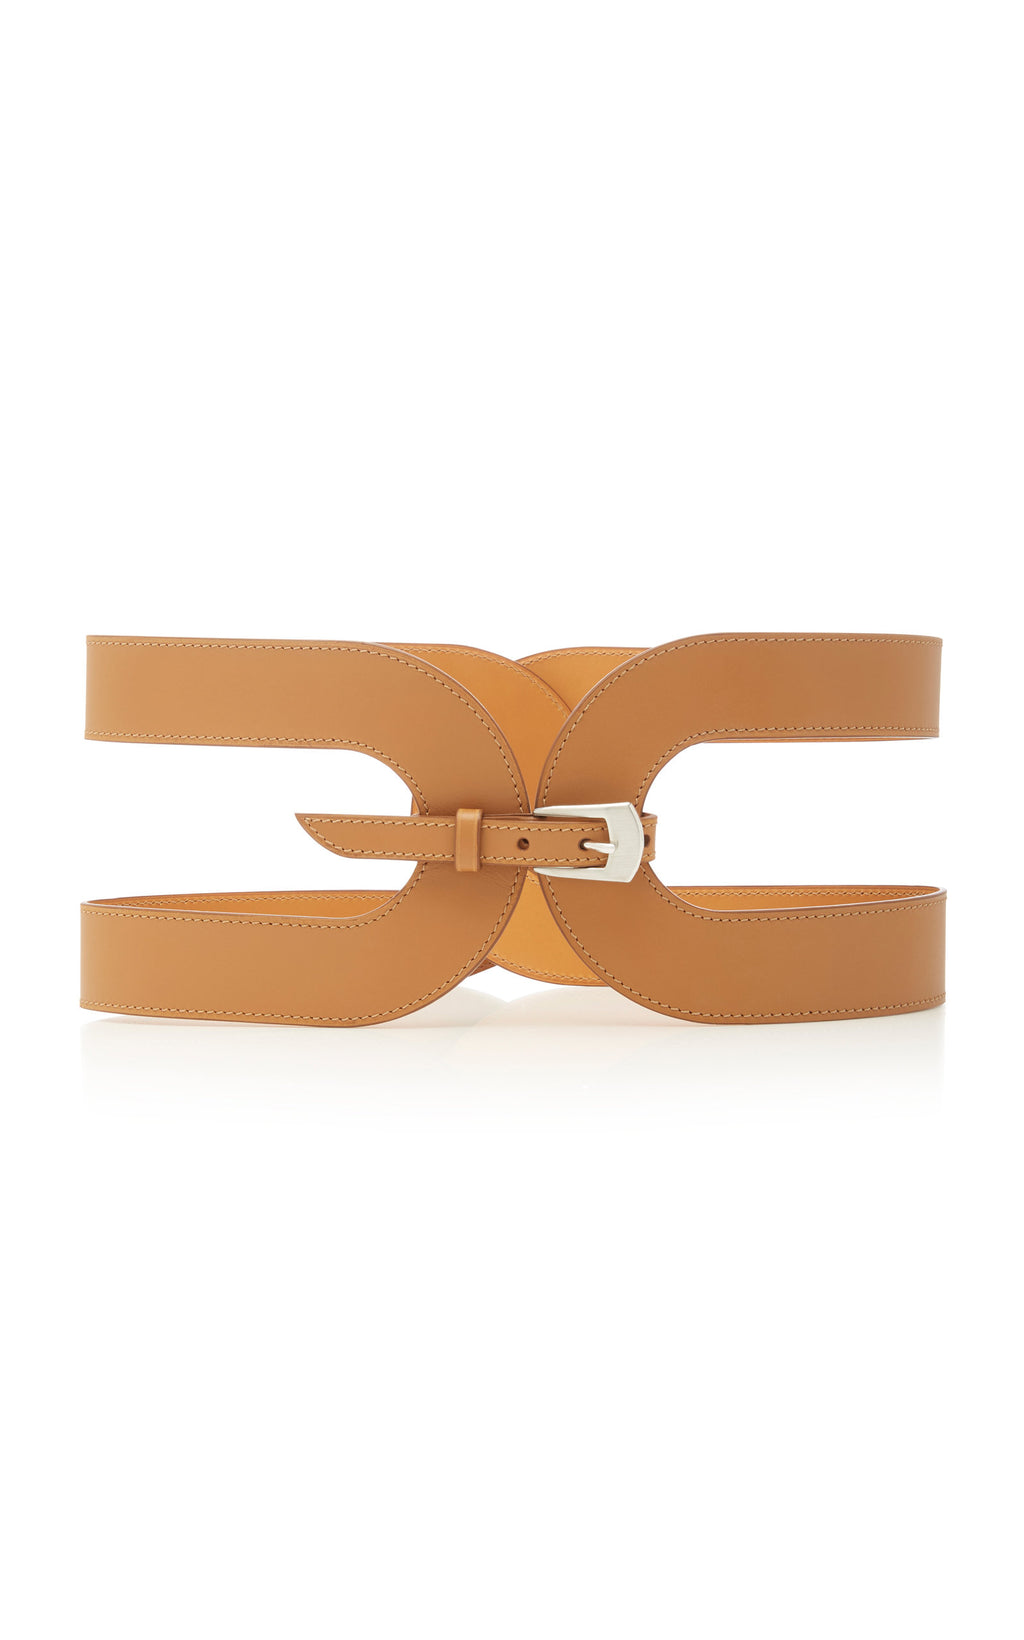 Maison Vaincourt Cage Leather Waist Belt Timeless Martha's Vineyard